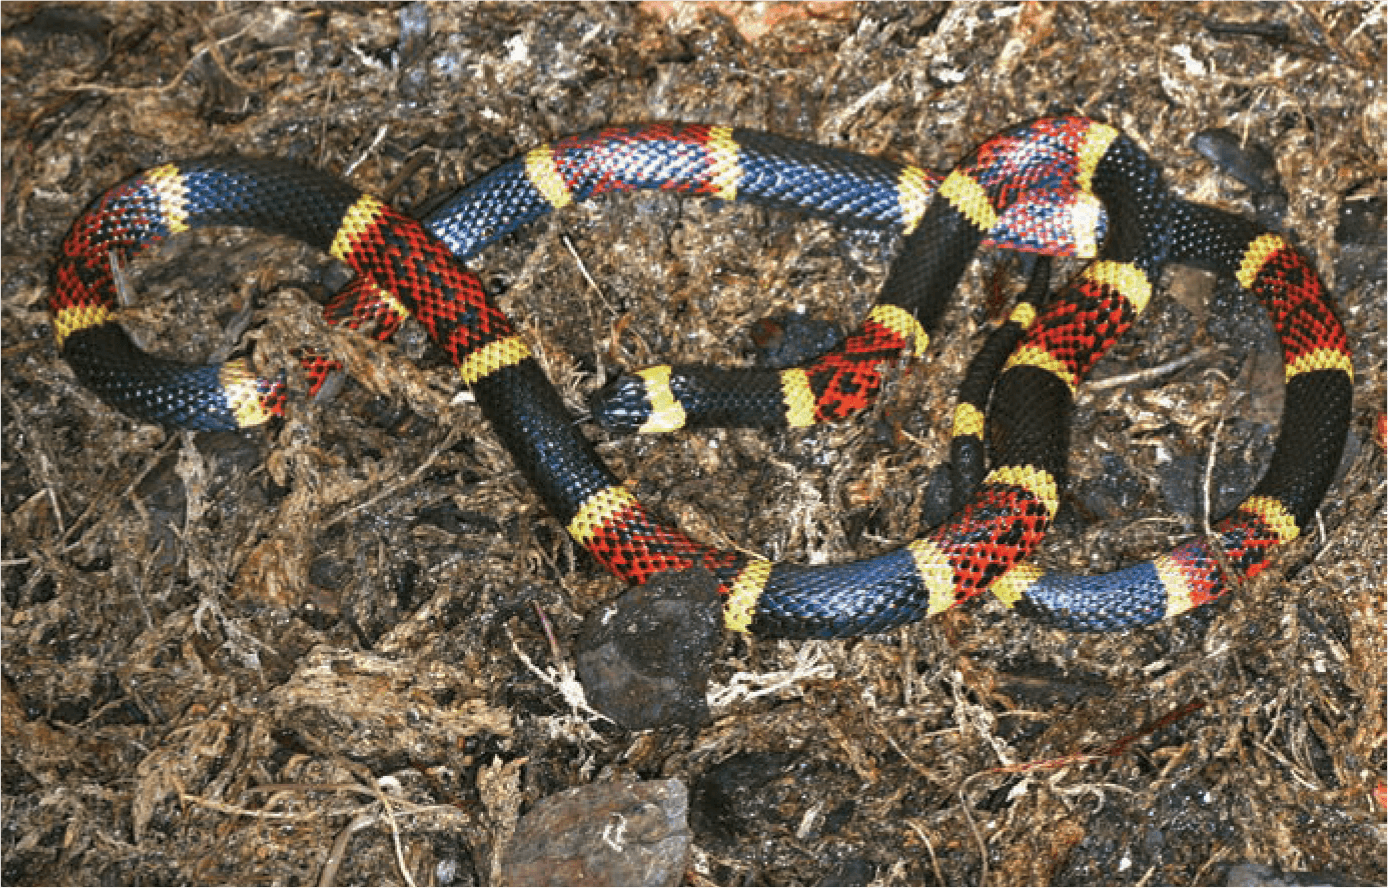 Snakebites are most prevalent during the warmer weather months, between april and October. (Credit: Houston Zoo)